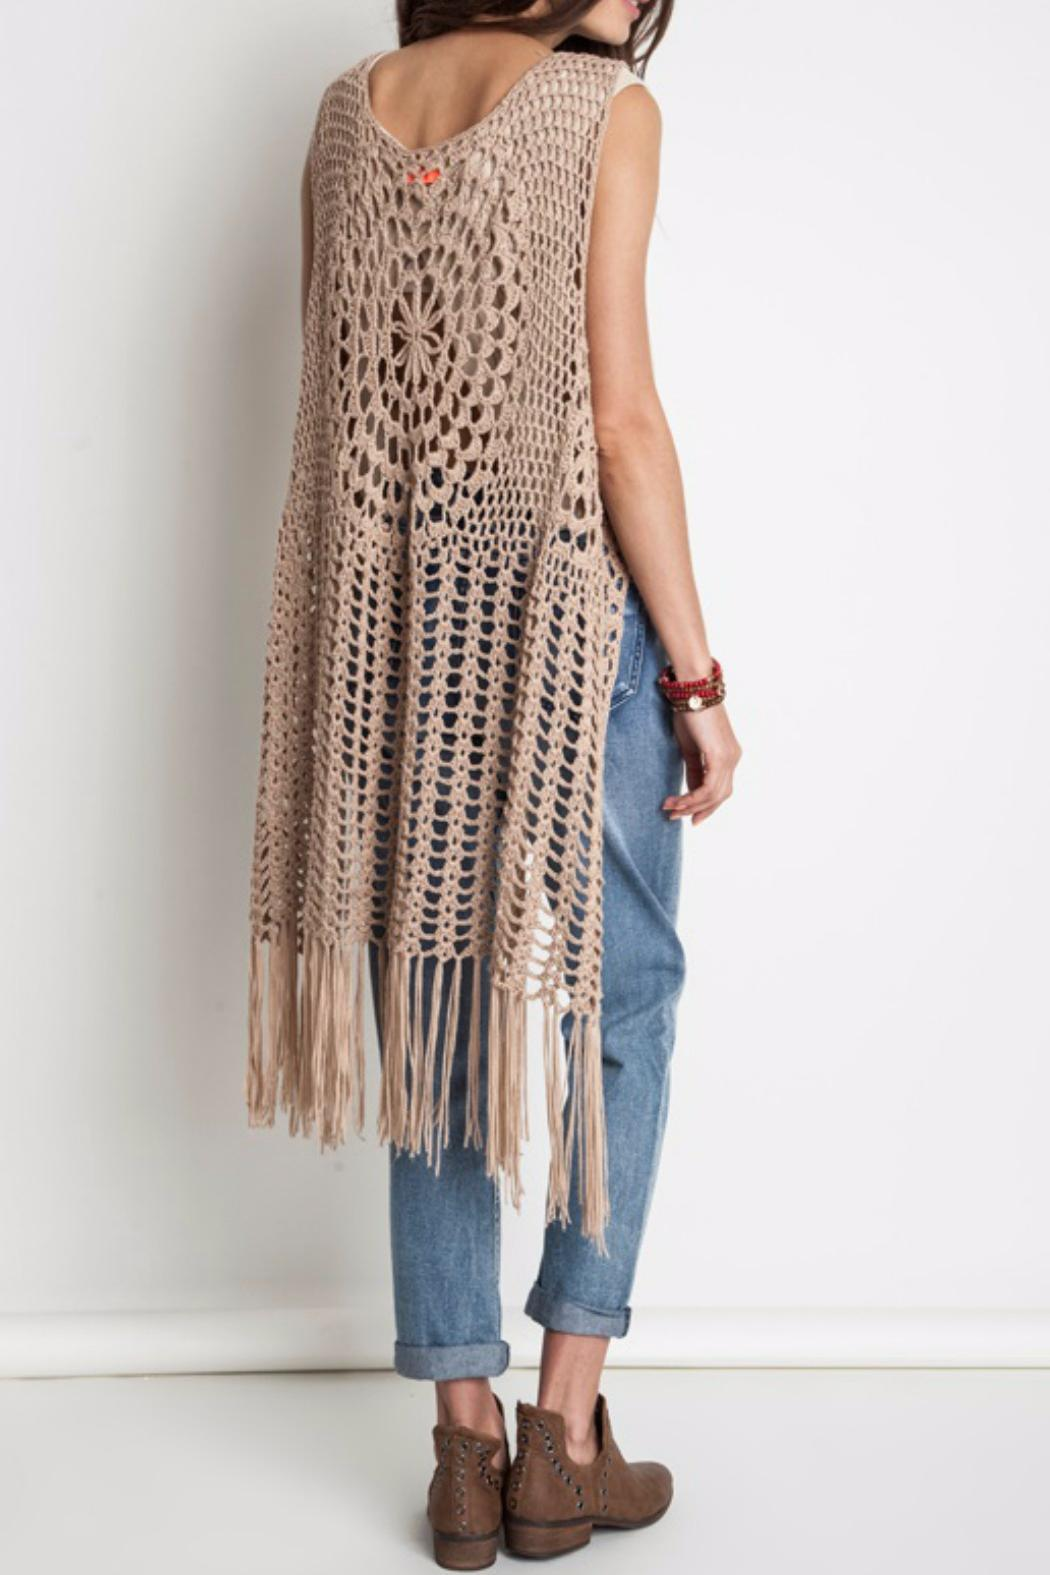 Harlow Crochet Vest By Umgee Taupe On Storenvy